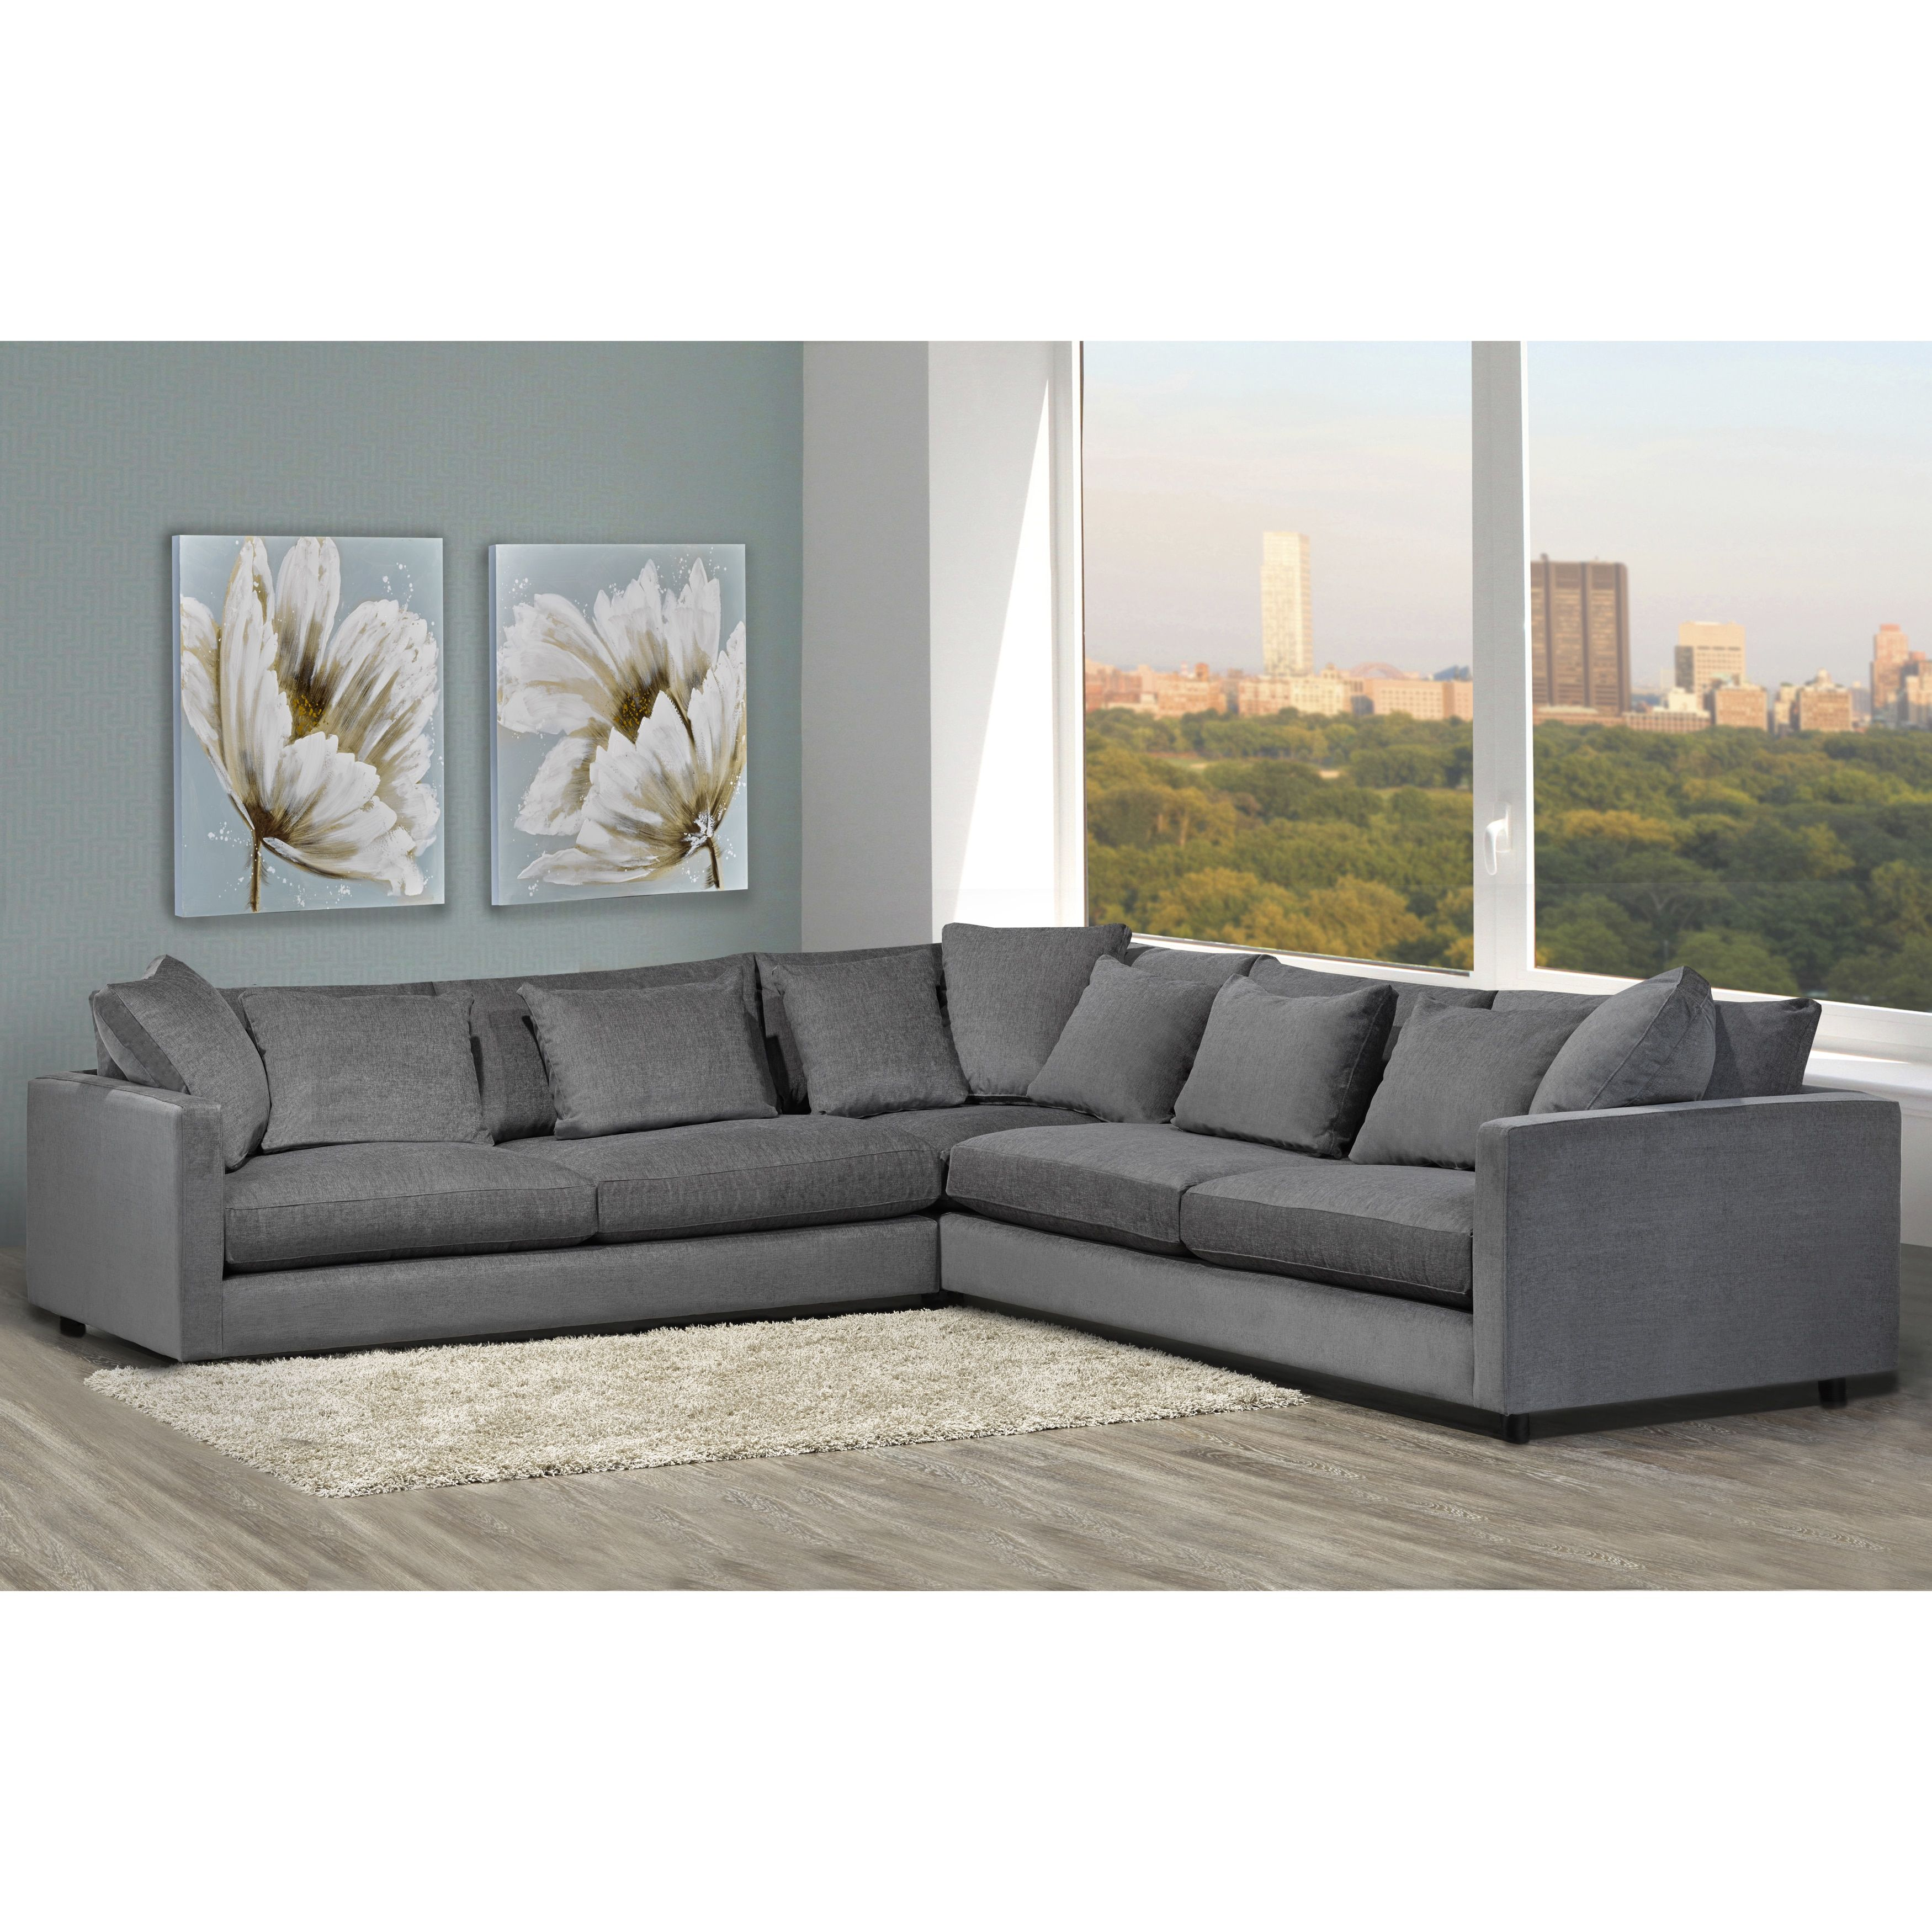 Claire Full Sleeper Sectional with Storage Chaise | Weekends Only Furniture and Mattress | Sectionals | Pinterest | Sleeper sectional Mattress and Storage  sc 1 st  Pinterest : weekends only sectionals - Sectionals, Sofas & Couches